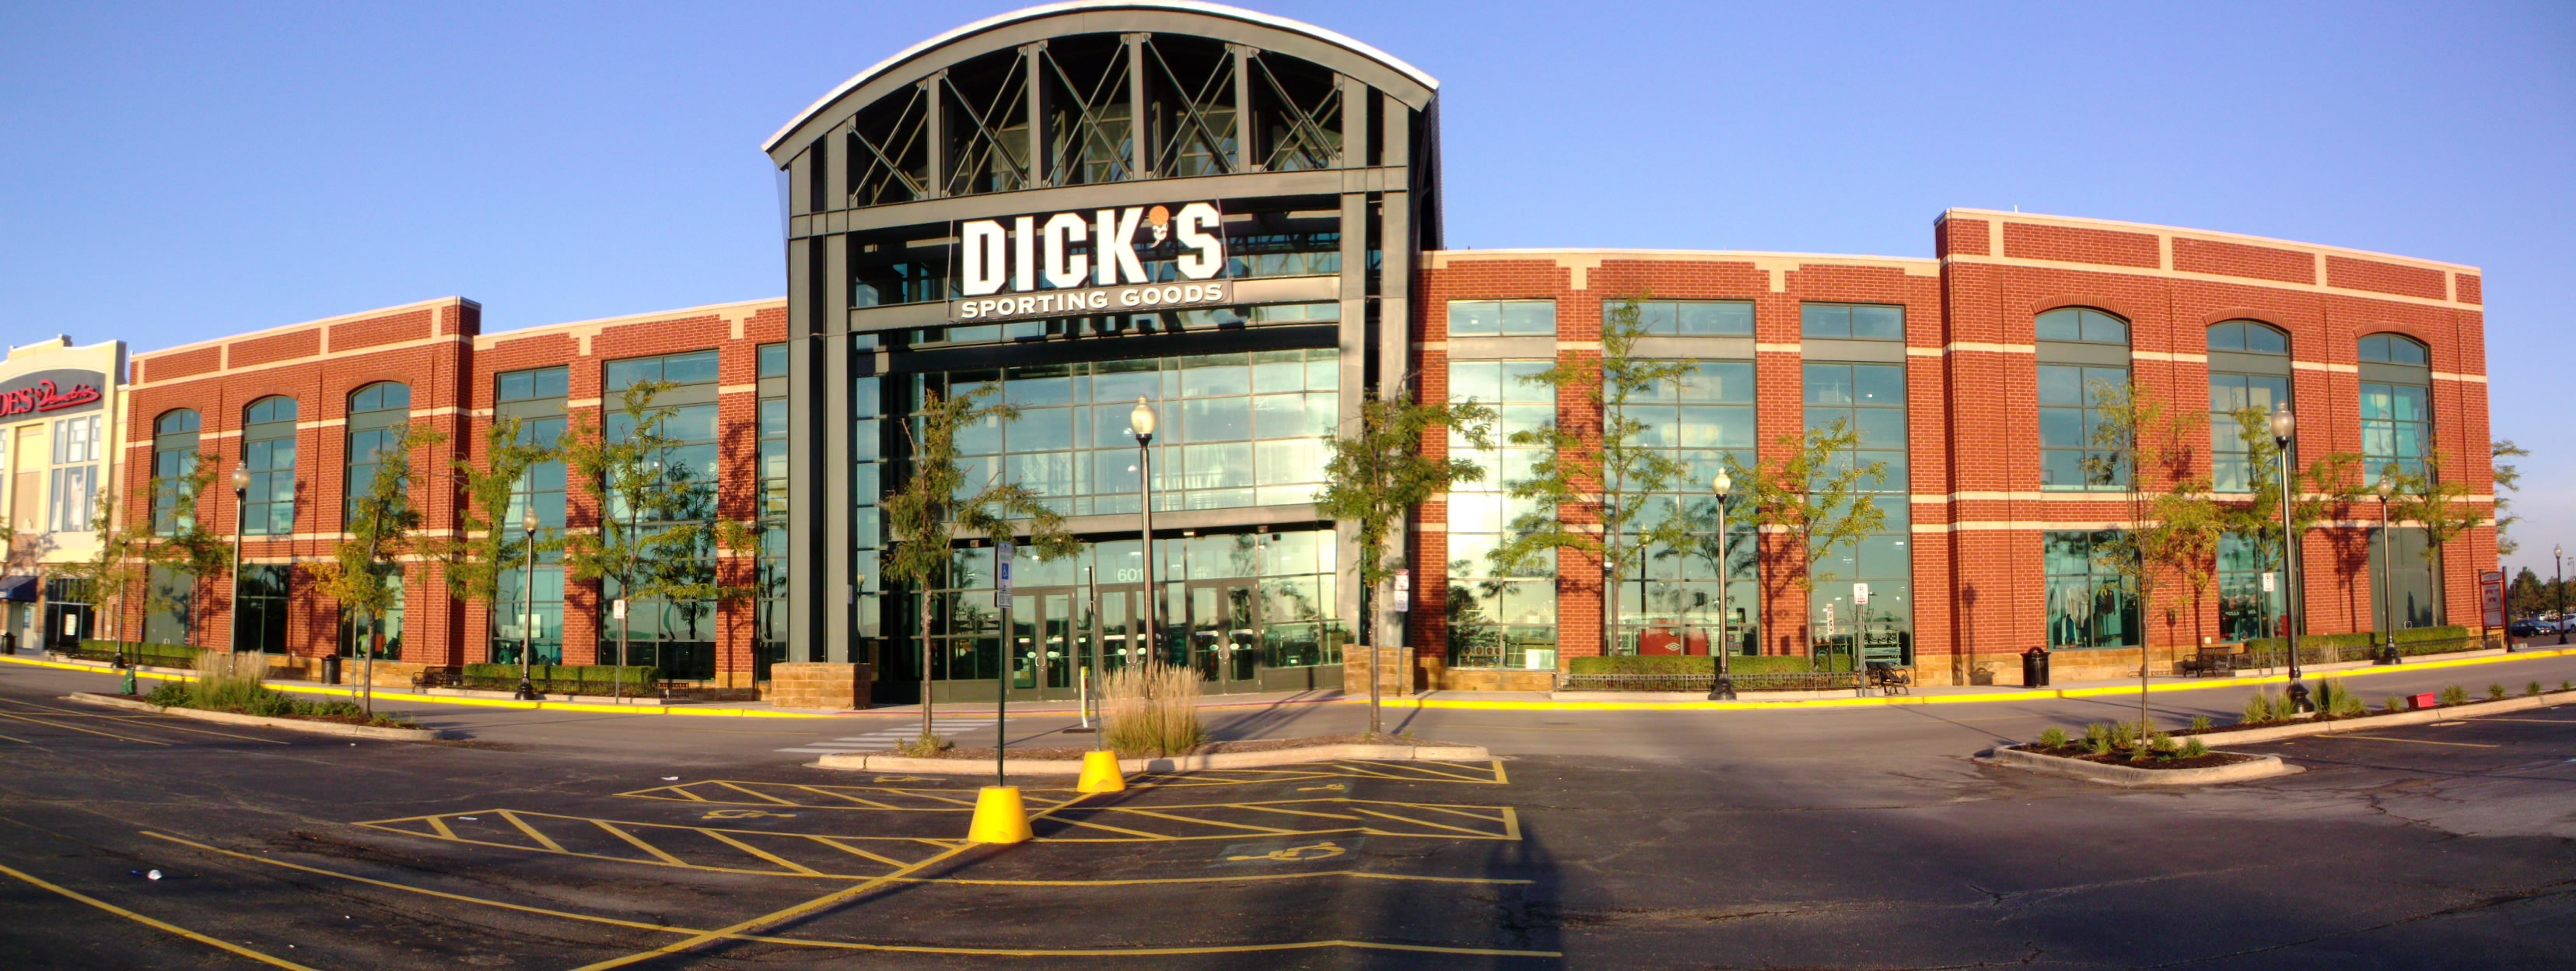 Store front of DICK'S Sporting Goods store in Schaumburg, IL